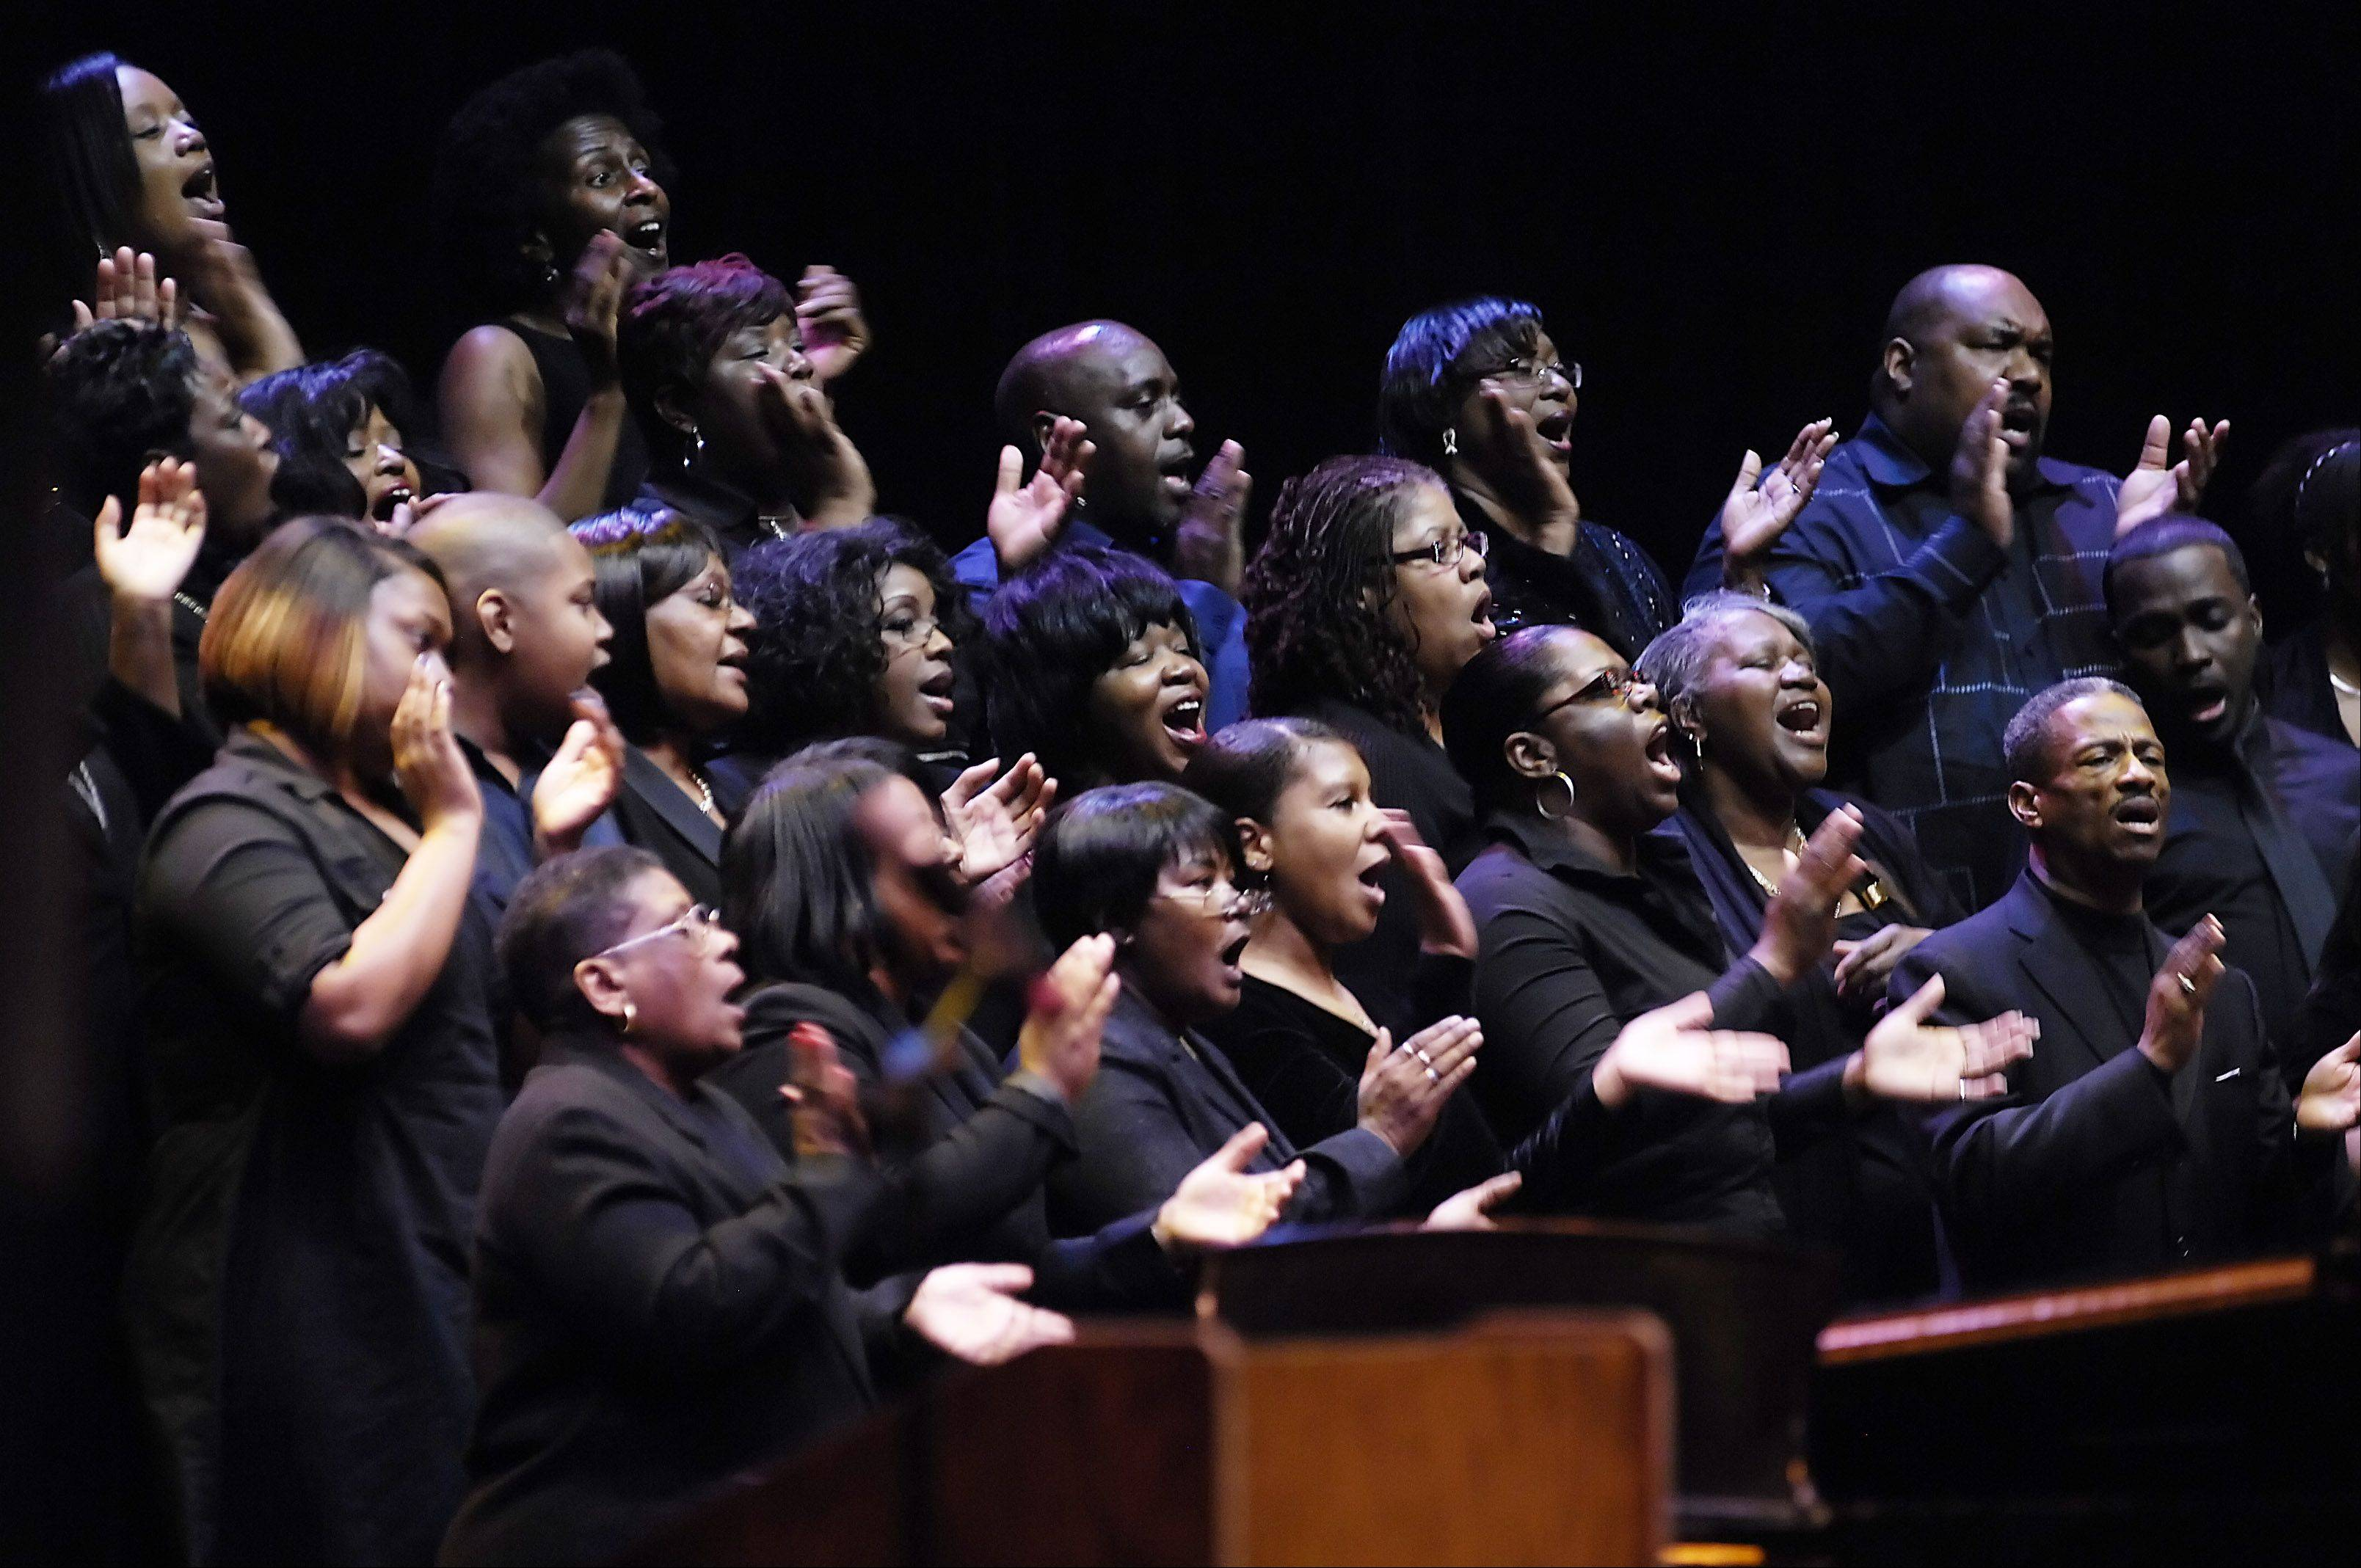 The Martin Luther King Community Choir performed in 2010 at the Hemmens Cultural Center in Elgin. The annual celebration is sponsored by the Elgin's Human Relations Commission.